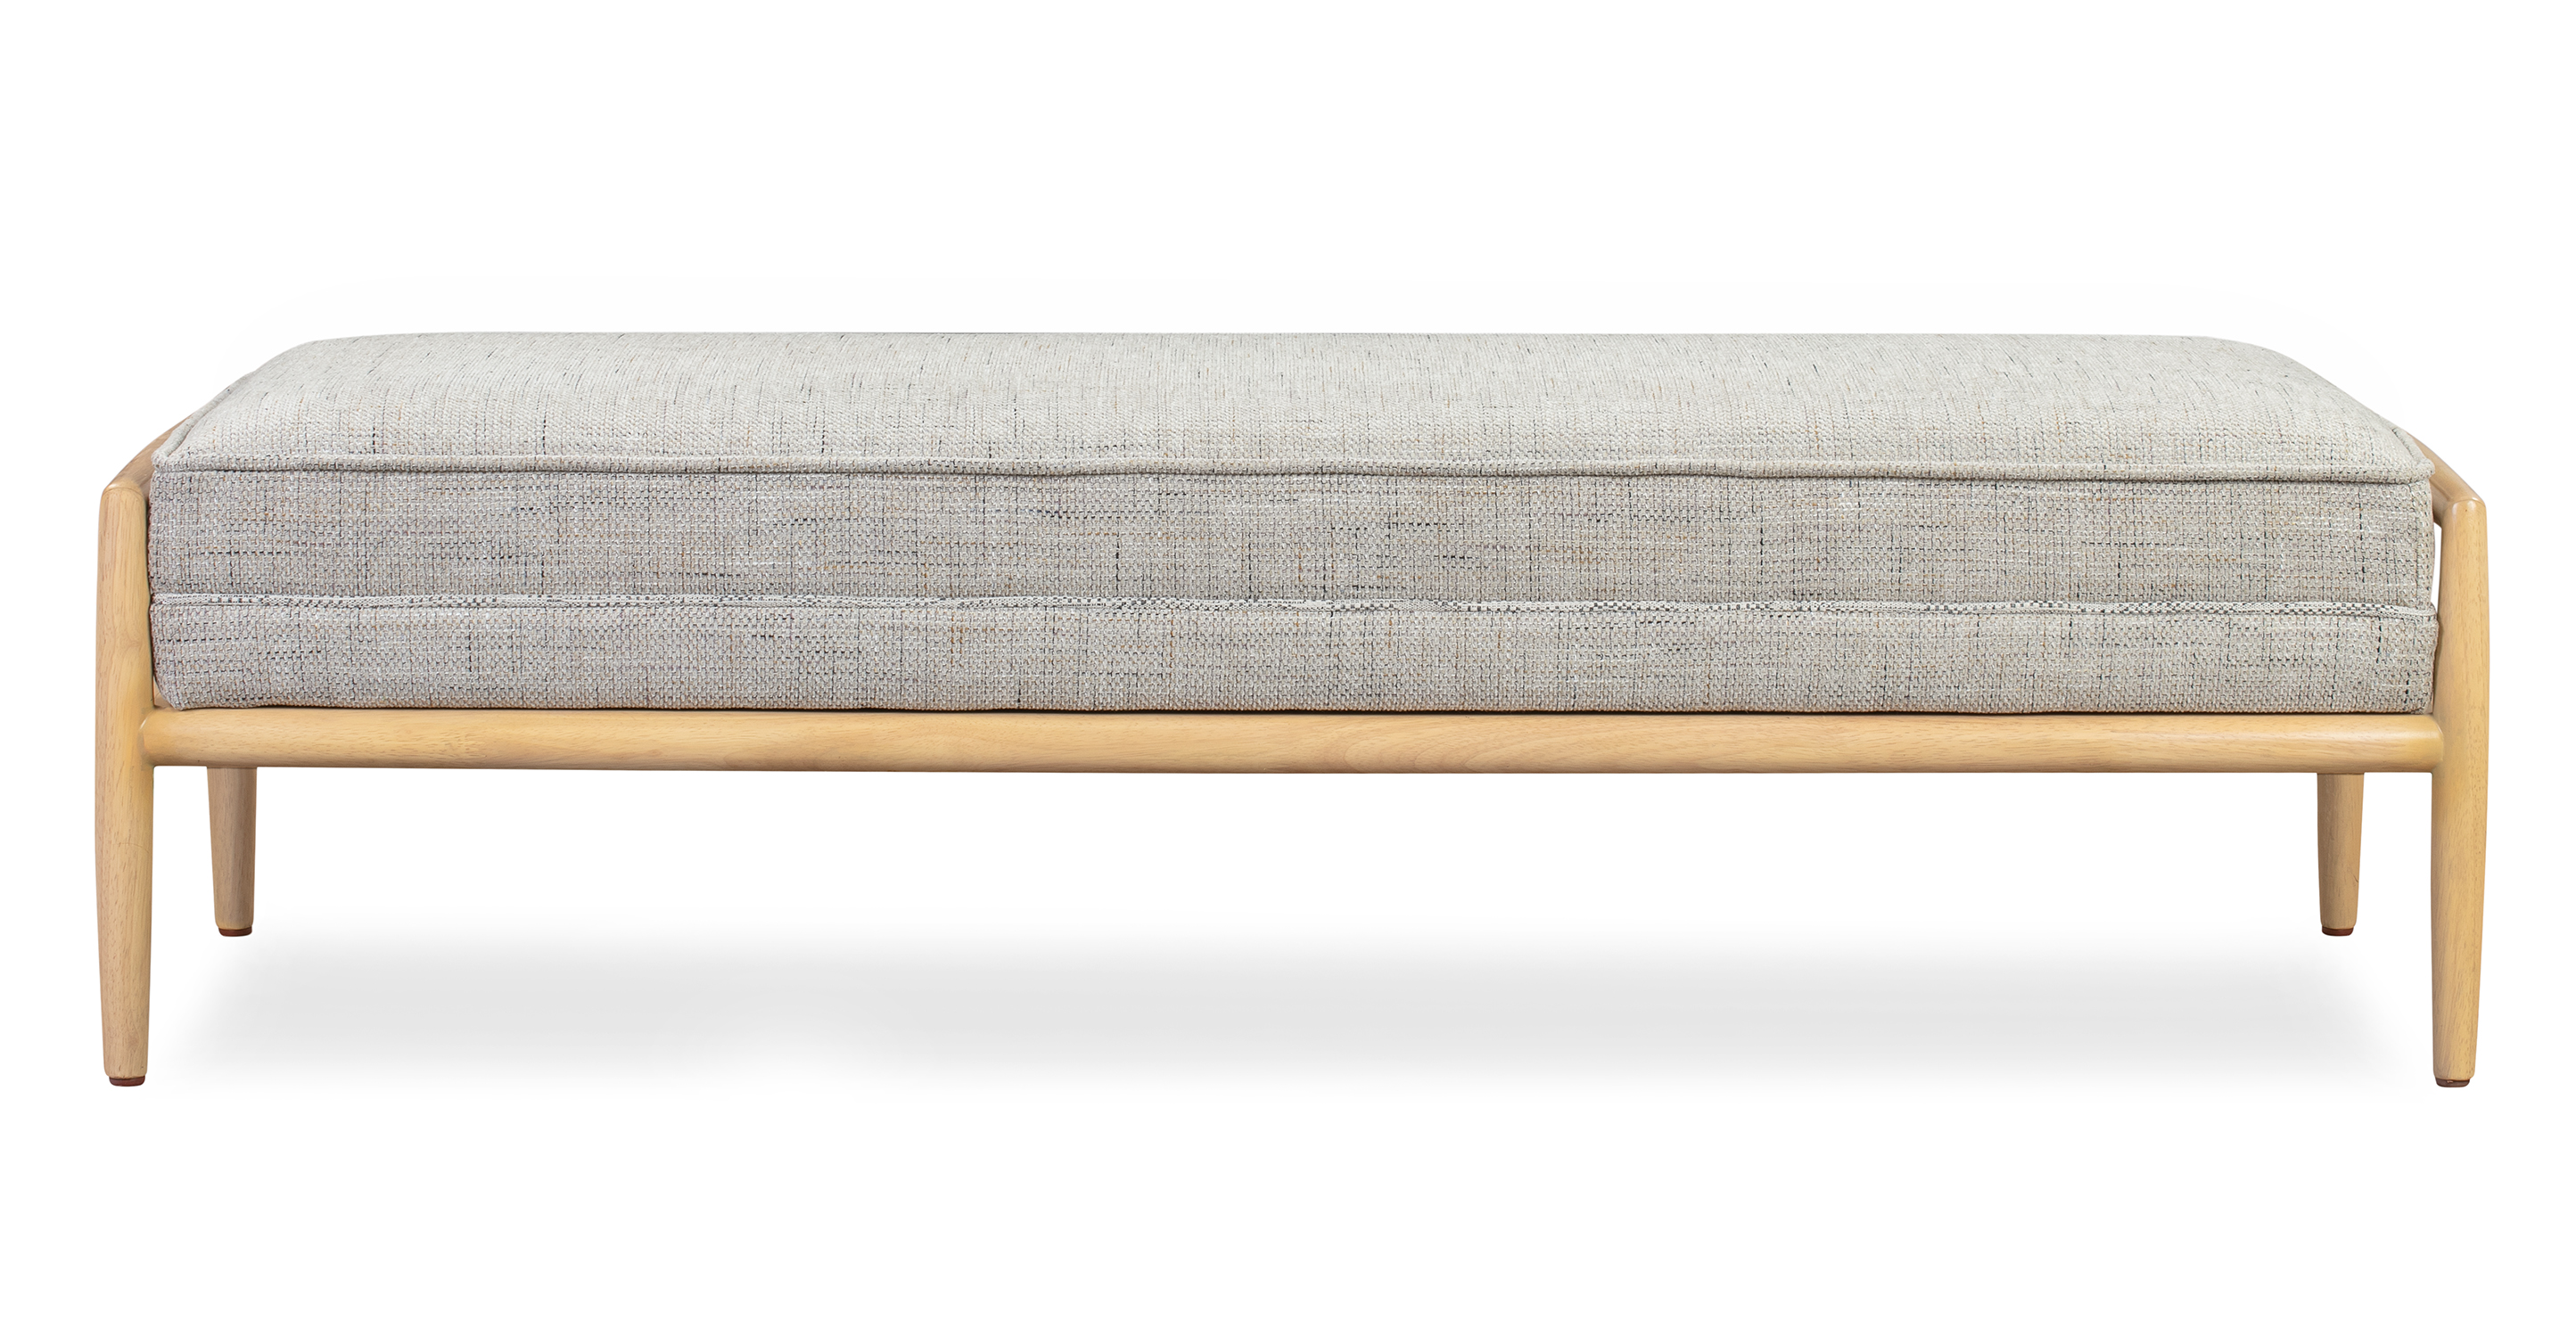 "Fritz 55"" Fabric Bench, Natural/Hessian Flecked"